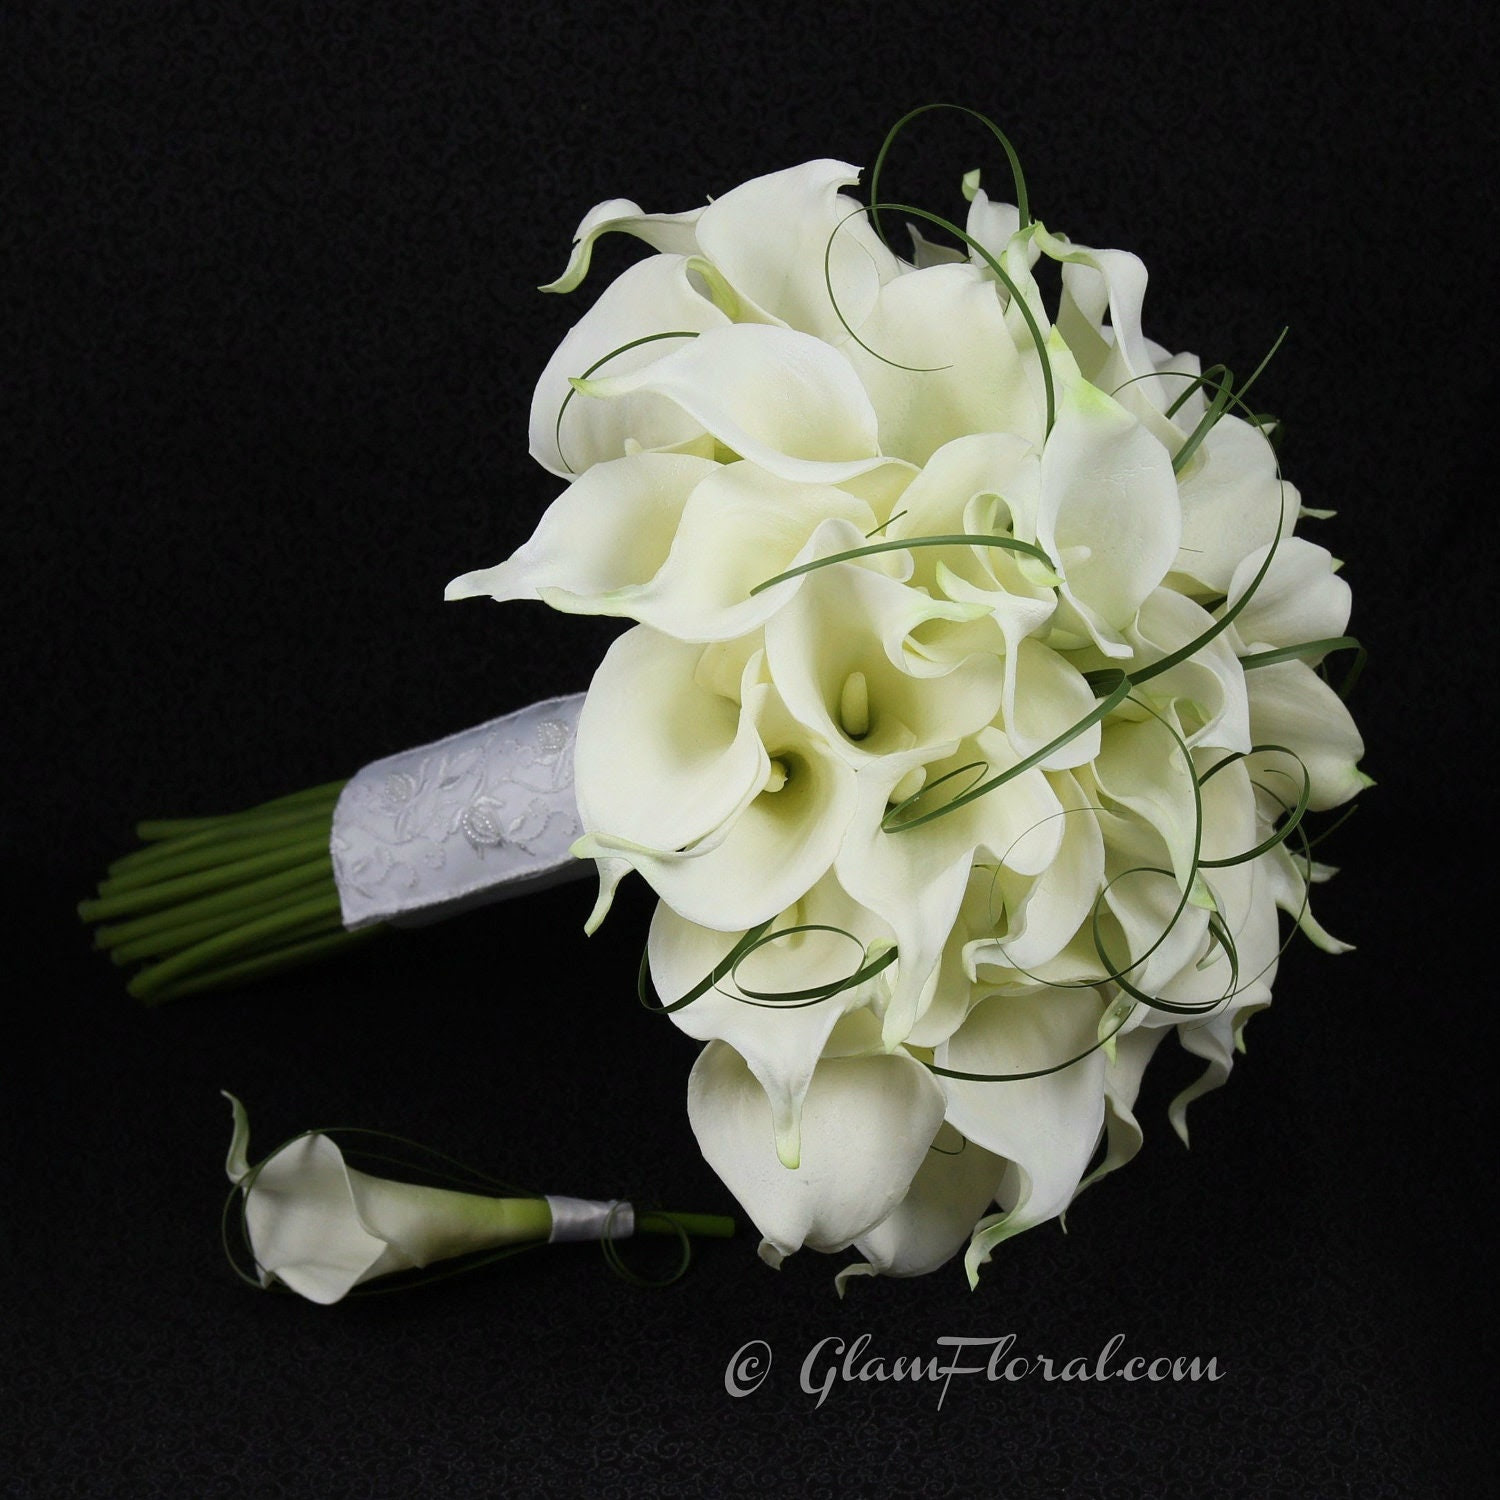 Red wedding flowers bridal bouquet types of flowers for wedding bouquets white calla lilies wedding bouquet 1500 x 1500 izmirmasajfo